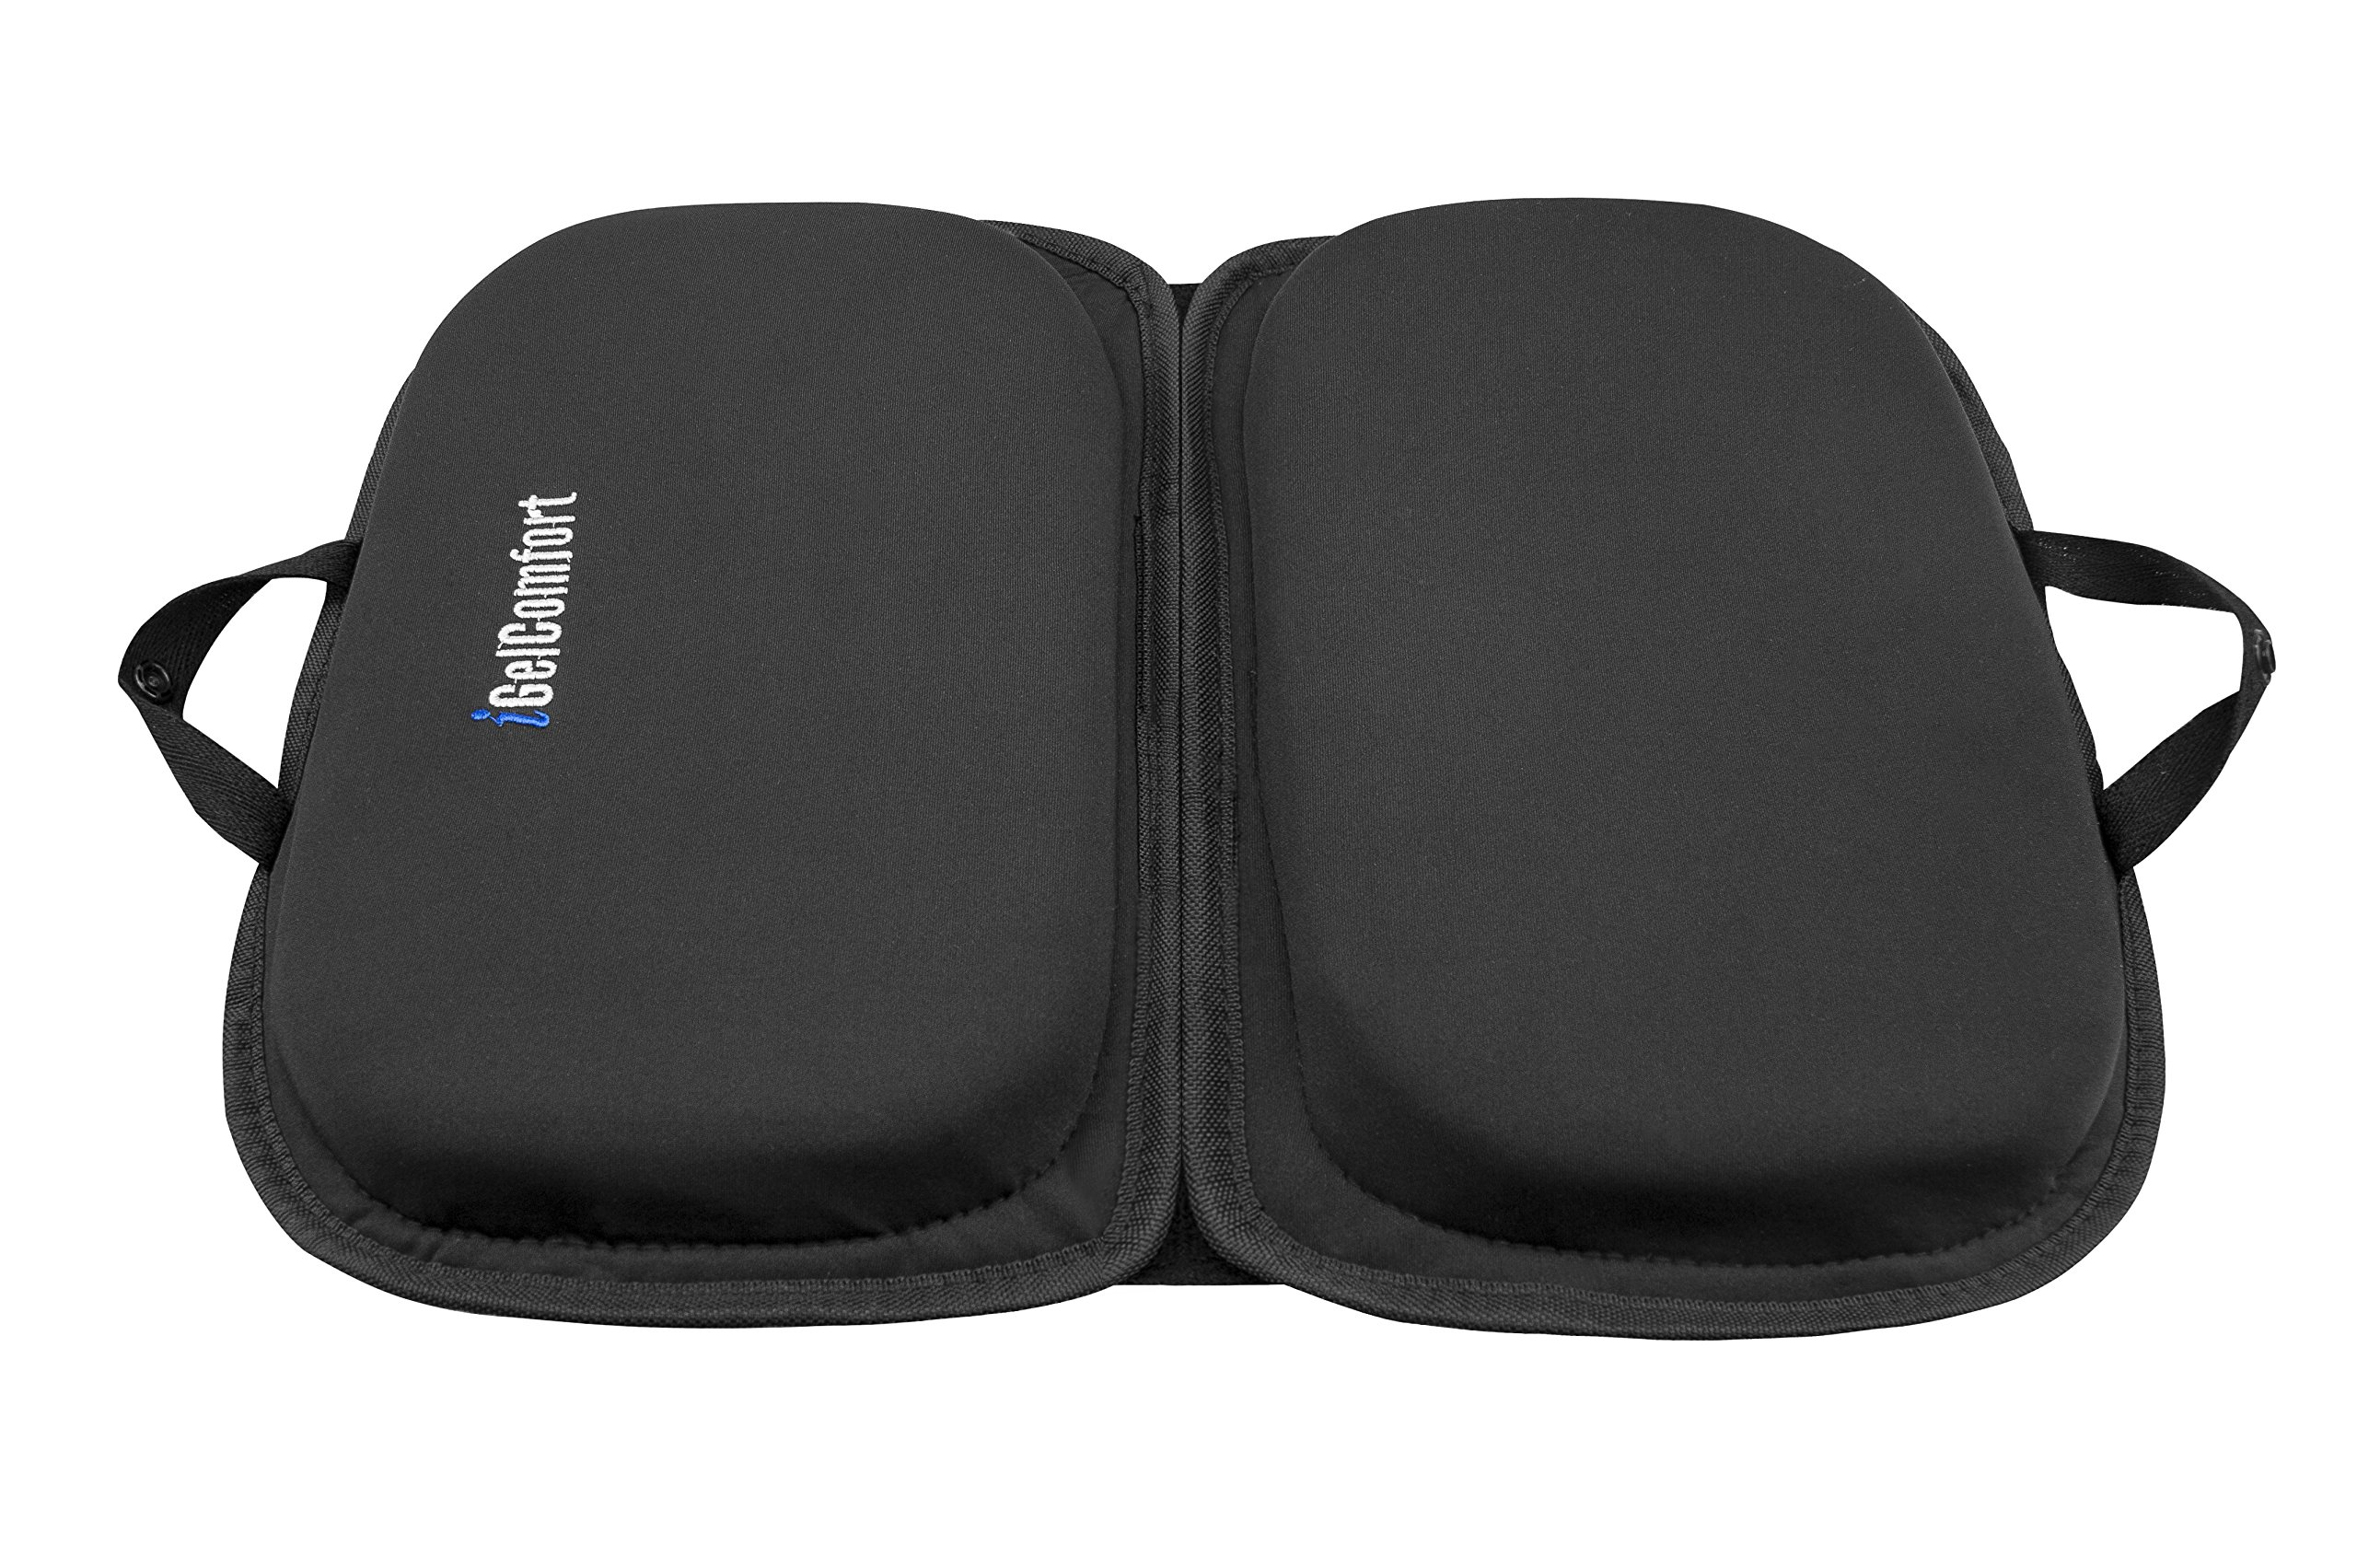 Details About Sojoy Igelcomfort 3 In 1 Foldable Gel Seat Cushion Featured With Memory Foam A